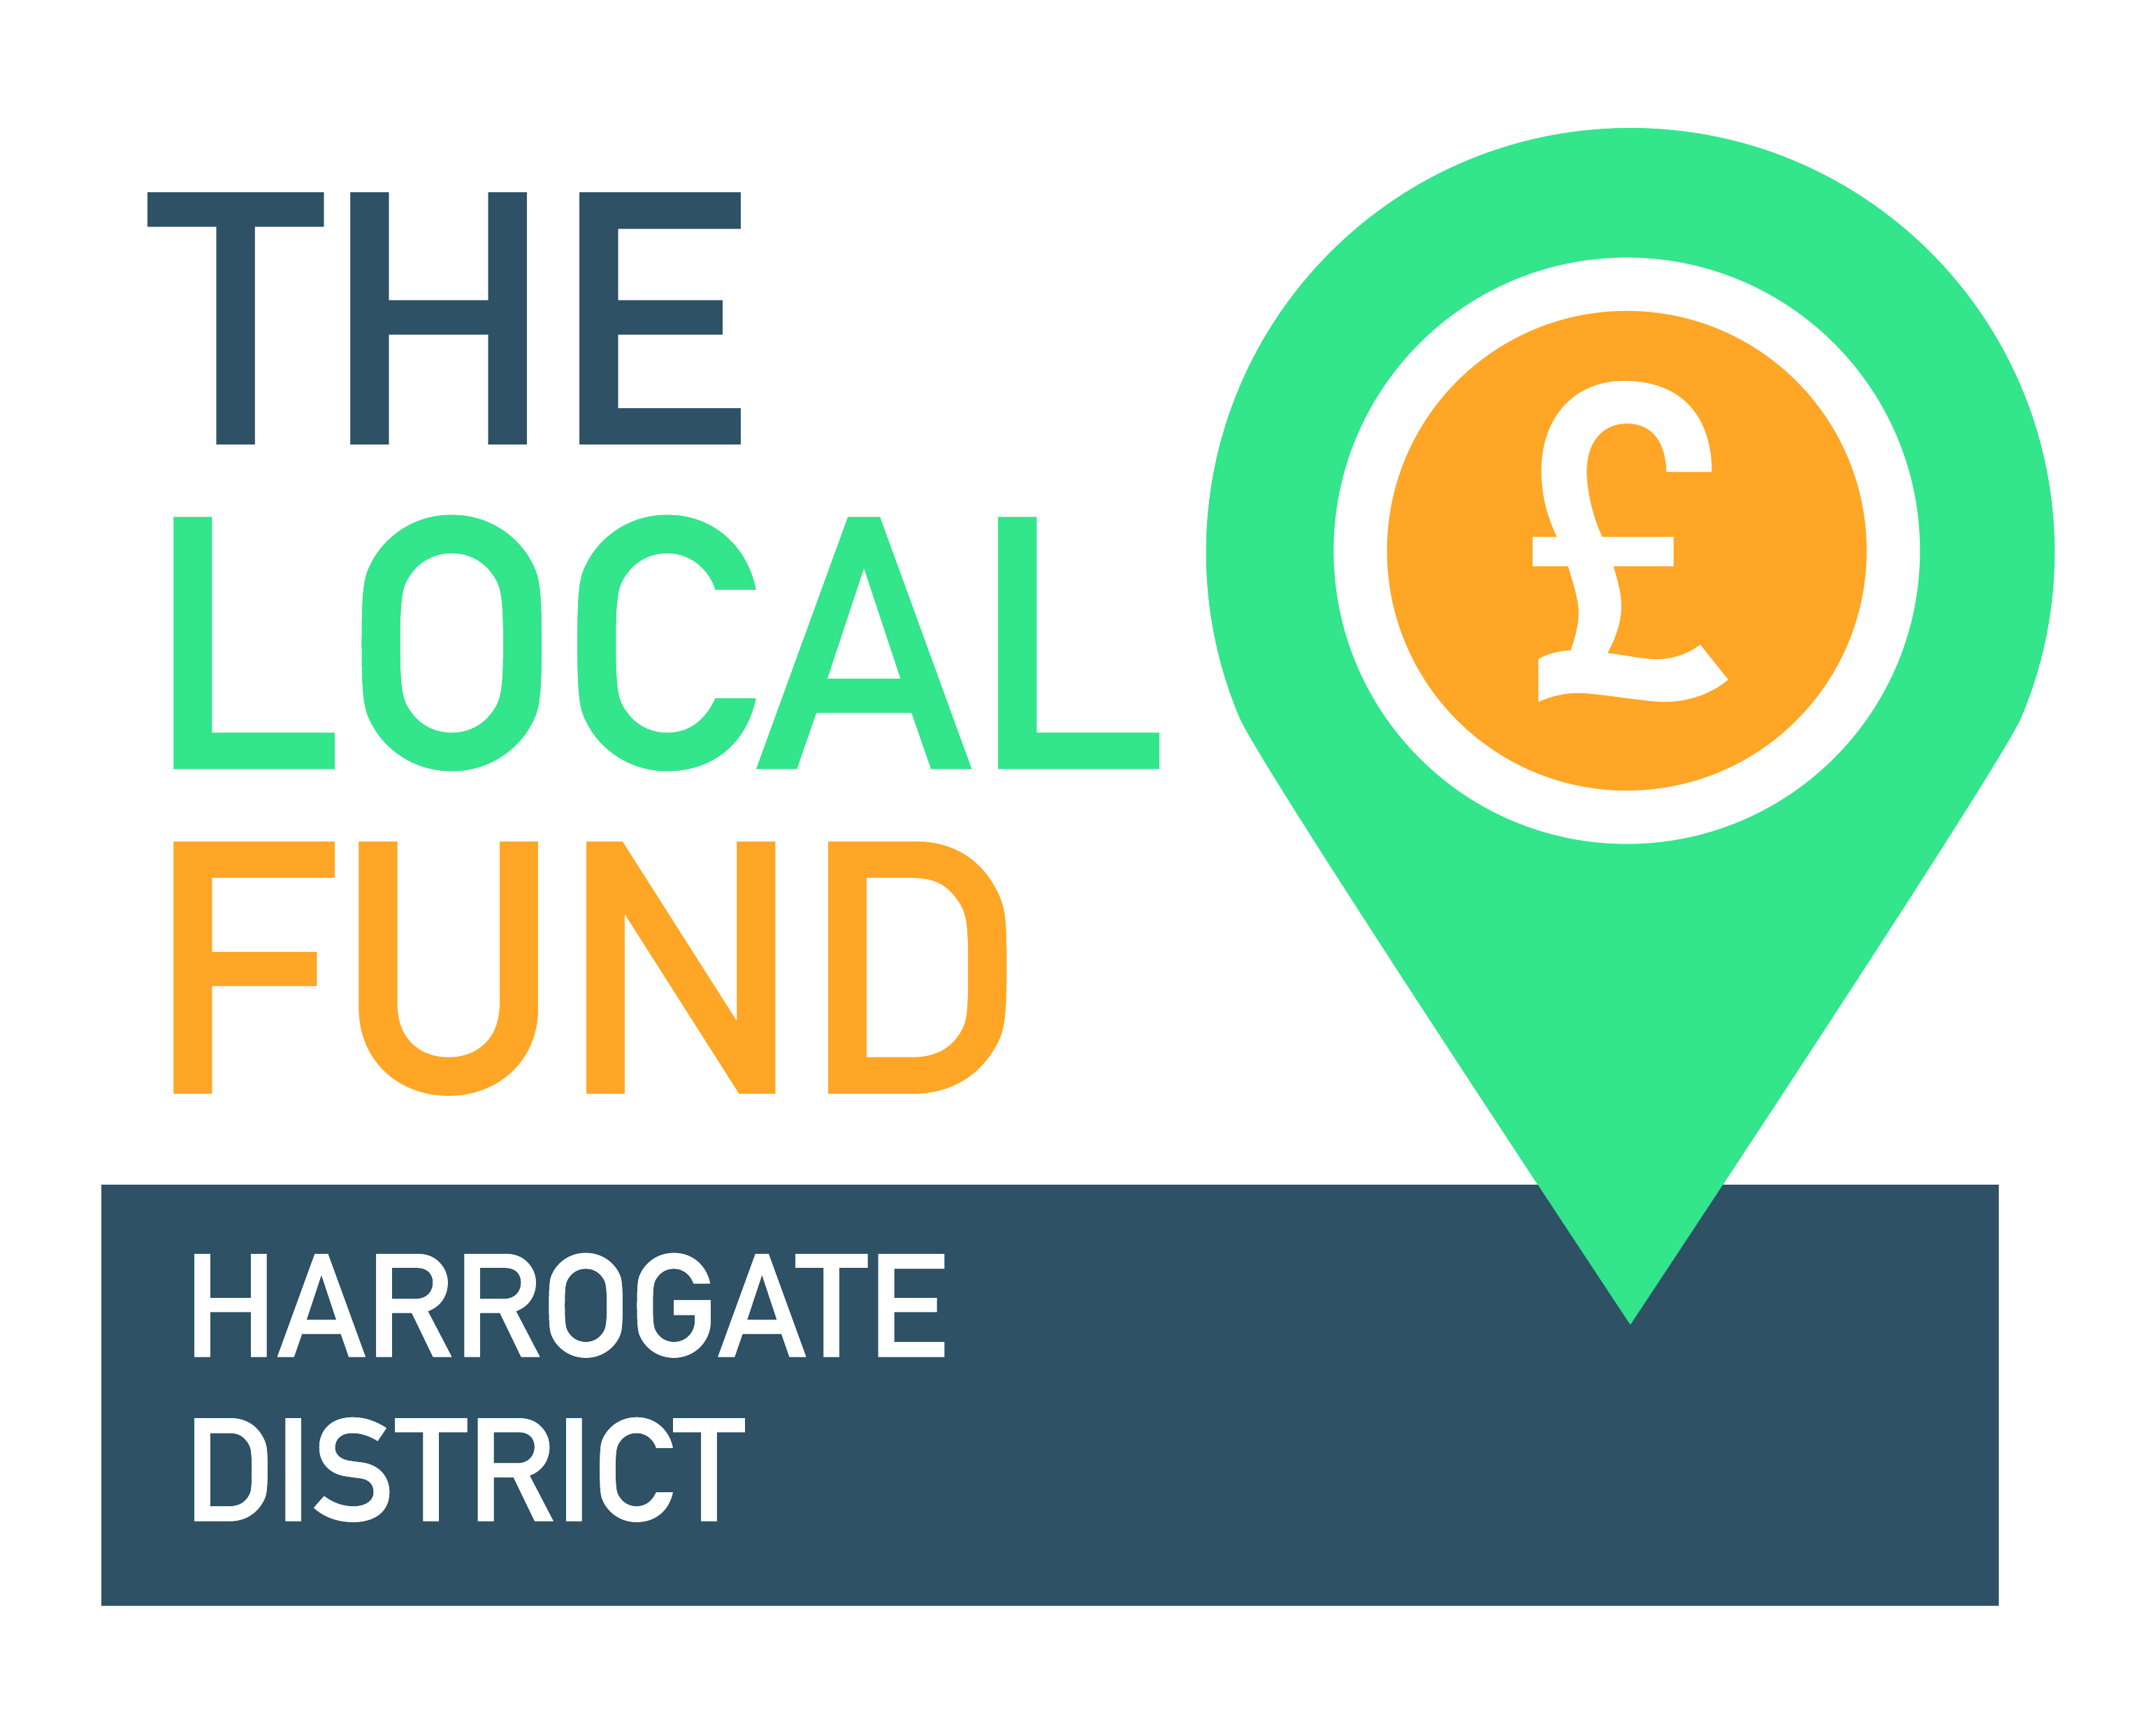 THE LOCAL FUND is now CLOSED for grants